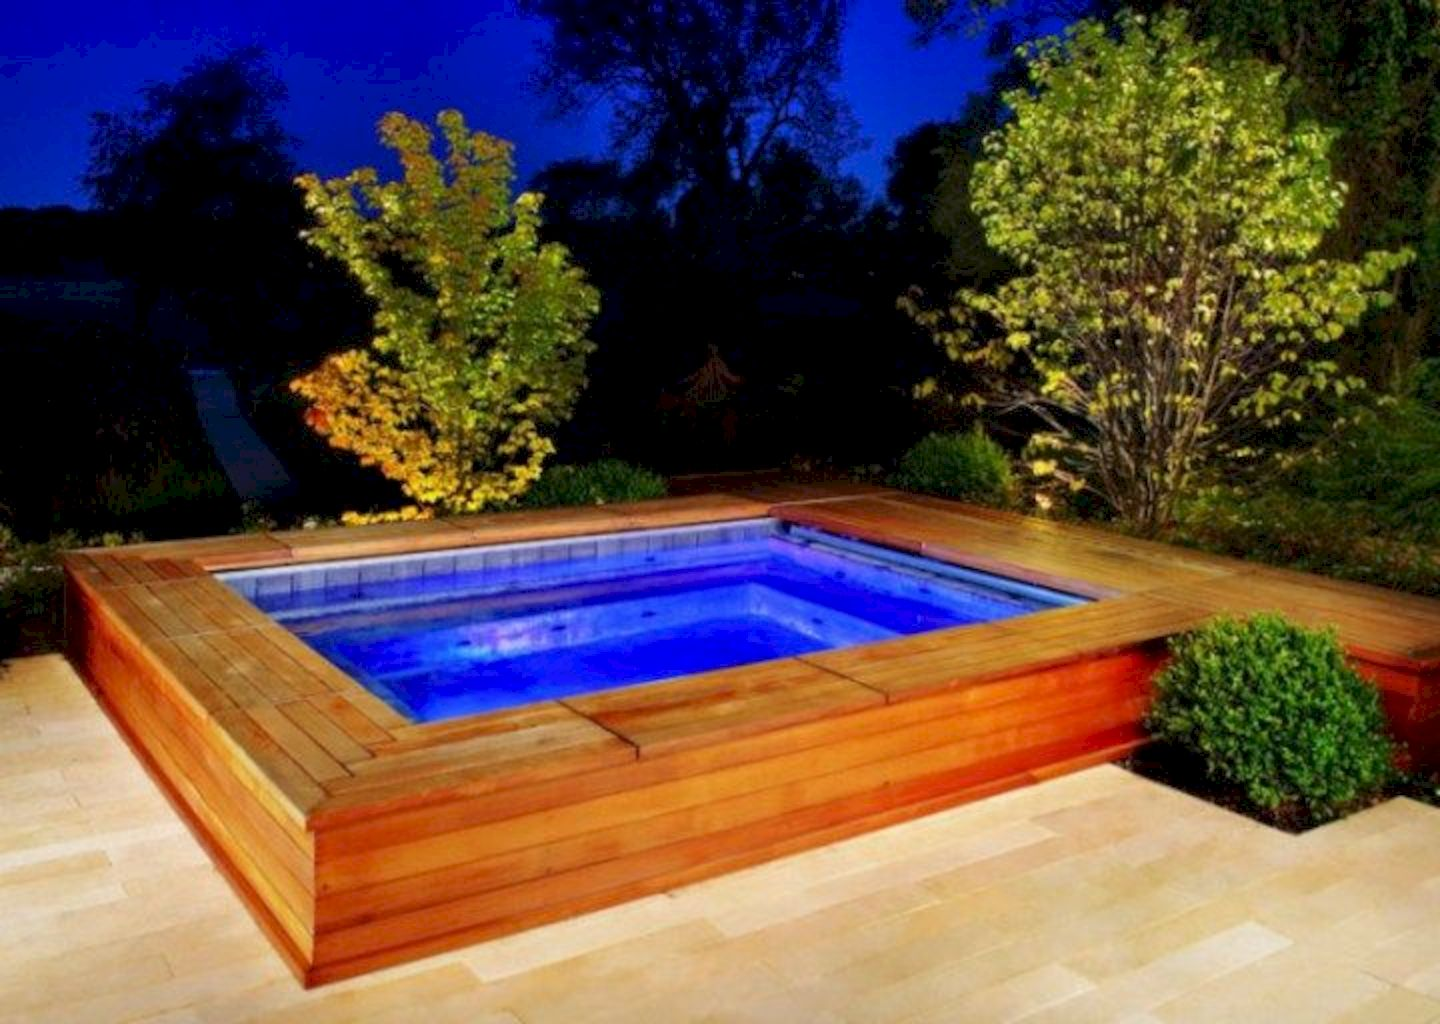 Simple pool designs built above ground designed with cheap materials for simple outdoor relieves Image 17